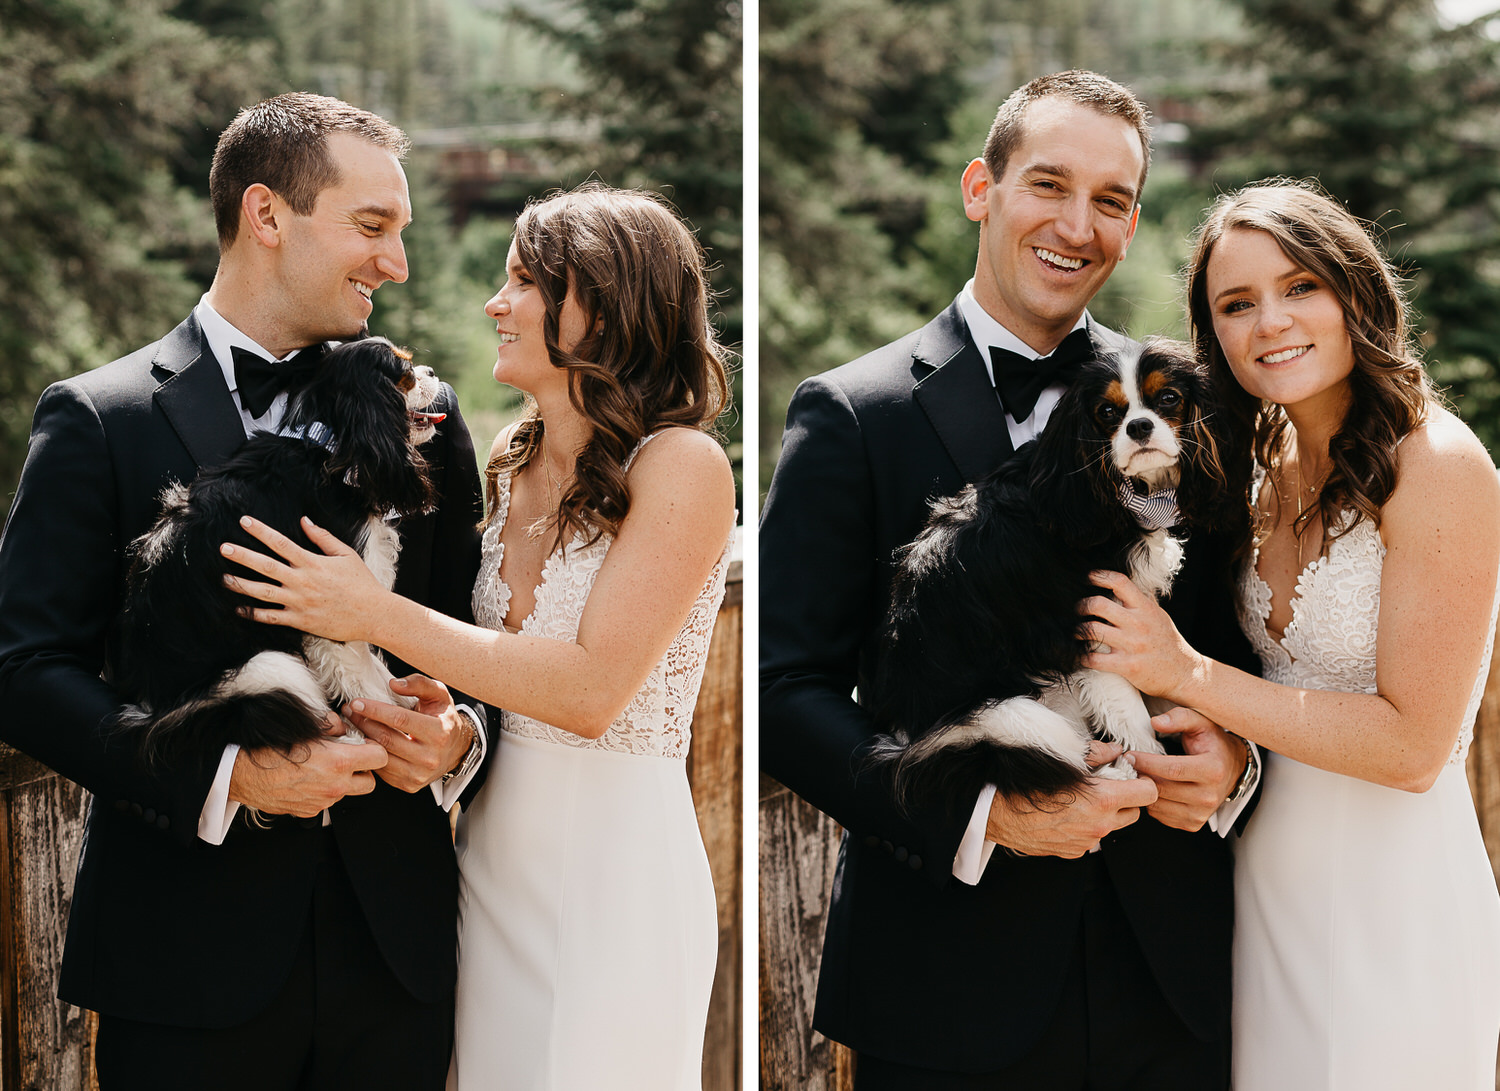 Camp Hale Wedding Colorado Wedding Photographer 7.jpg